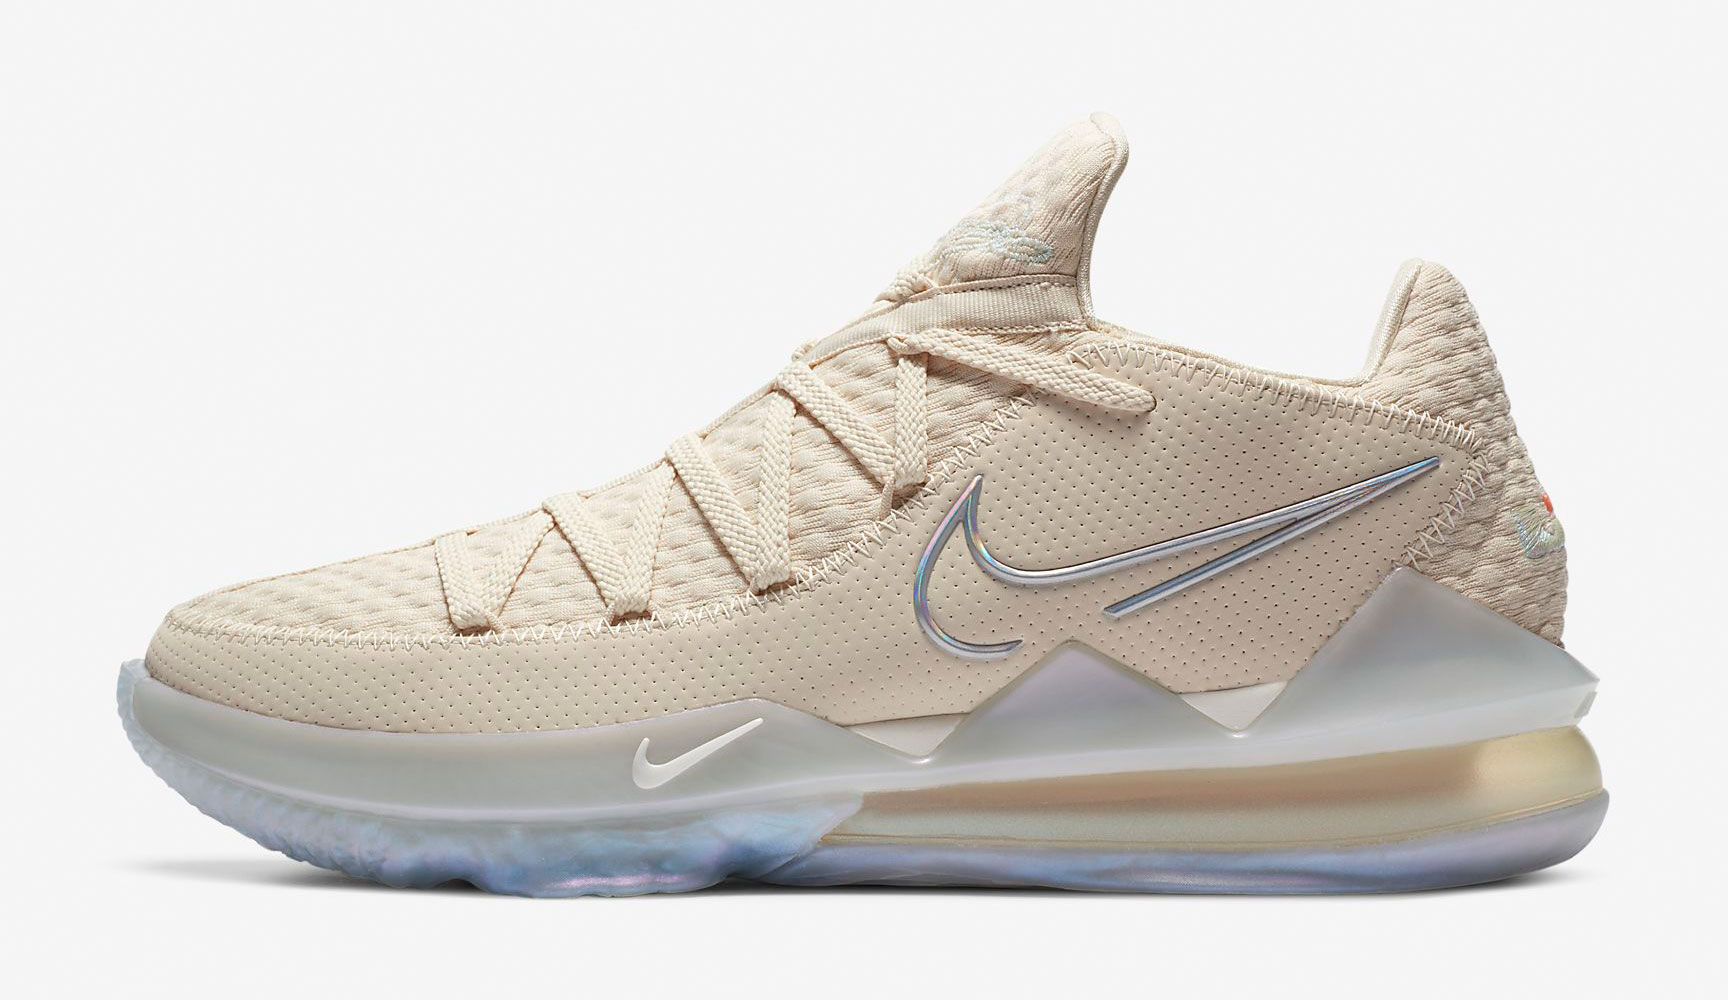 nike-lebron-17-low-light-cream-release-date